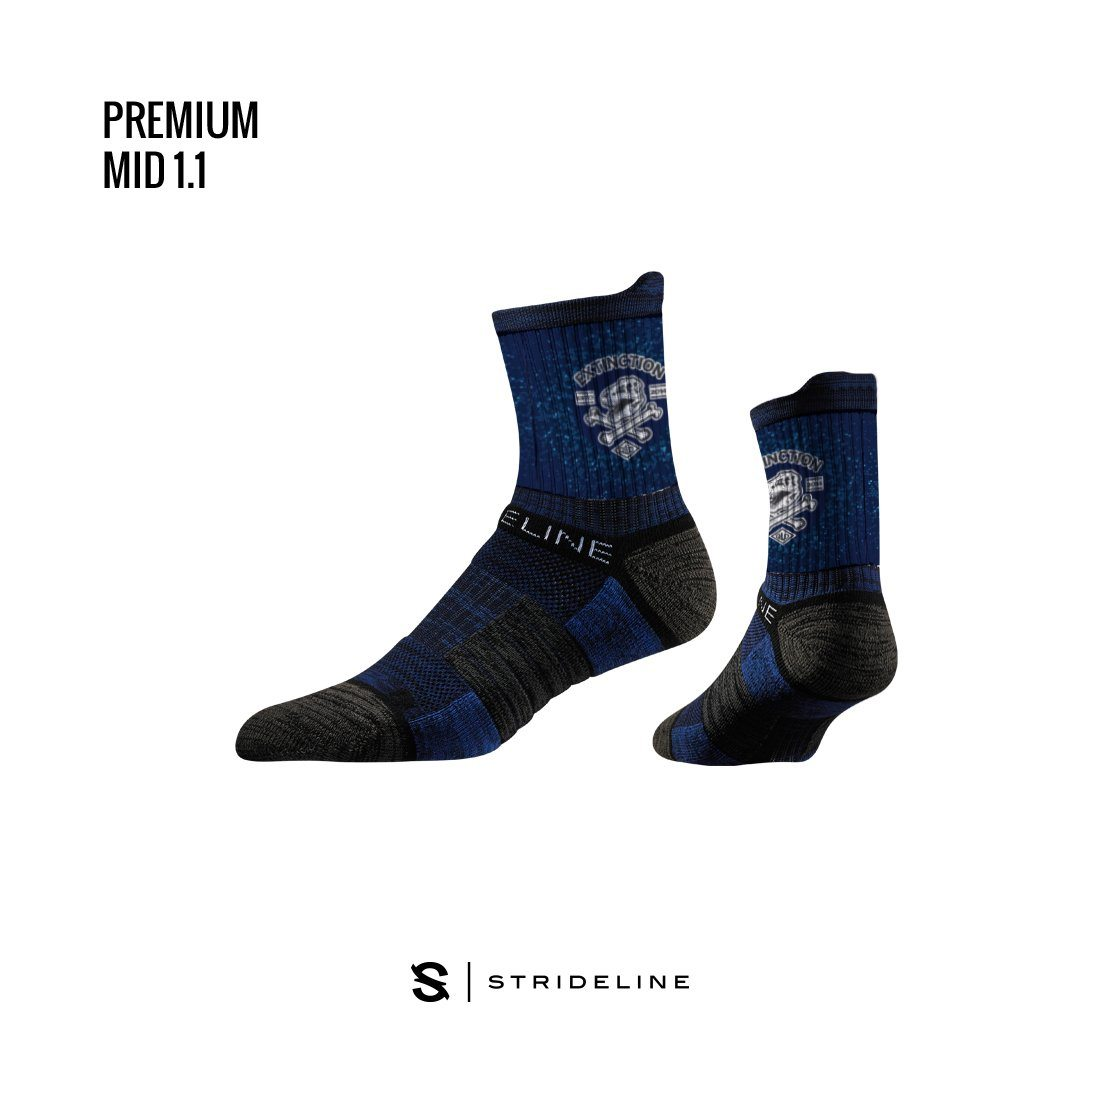 EXTINCTION ULTIMATE CLUB - PREMIUM MID - M/L